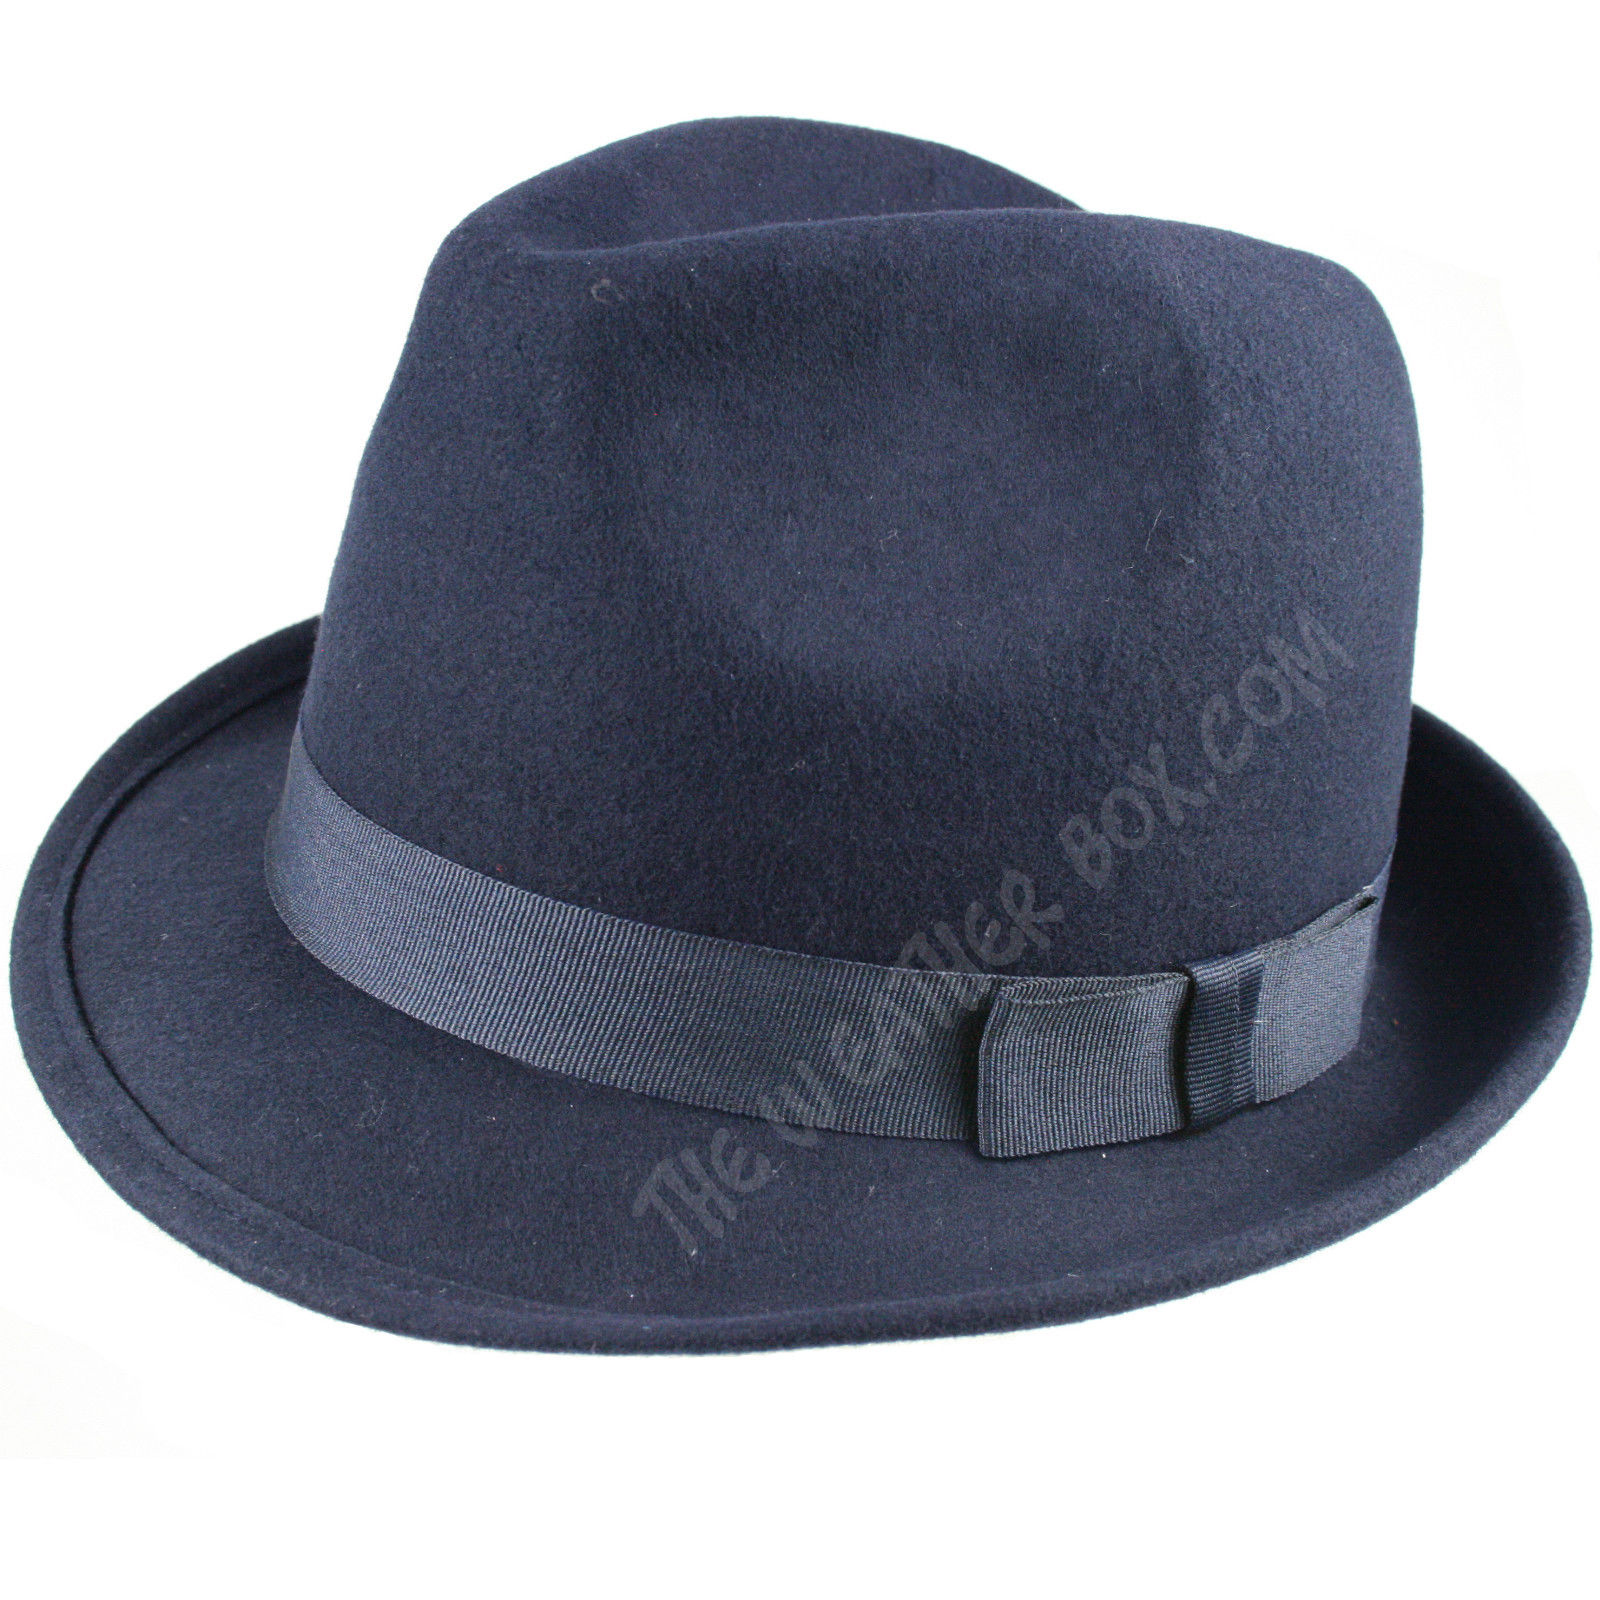 9b3f39bbb33 Shop eBay for great deals on Men's Fedora/Trilby Straw Hats. You'll